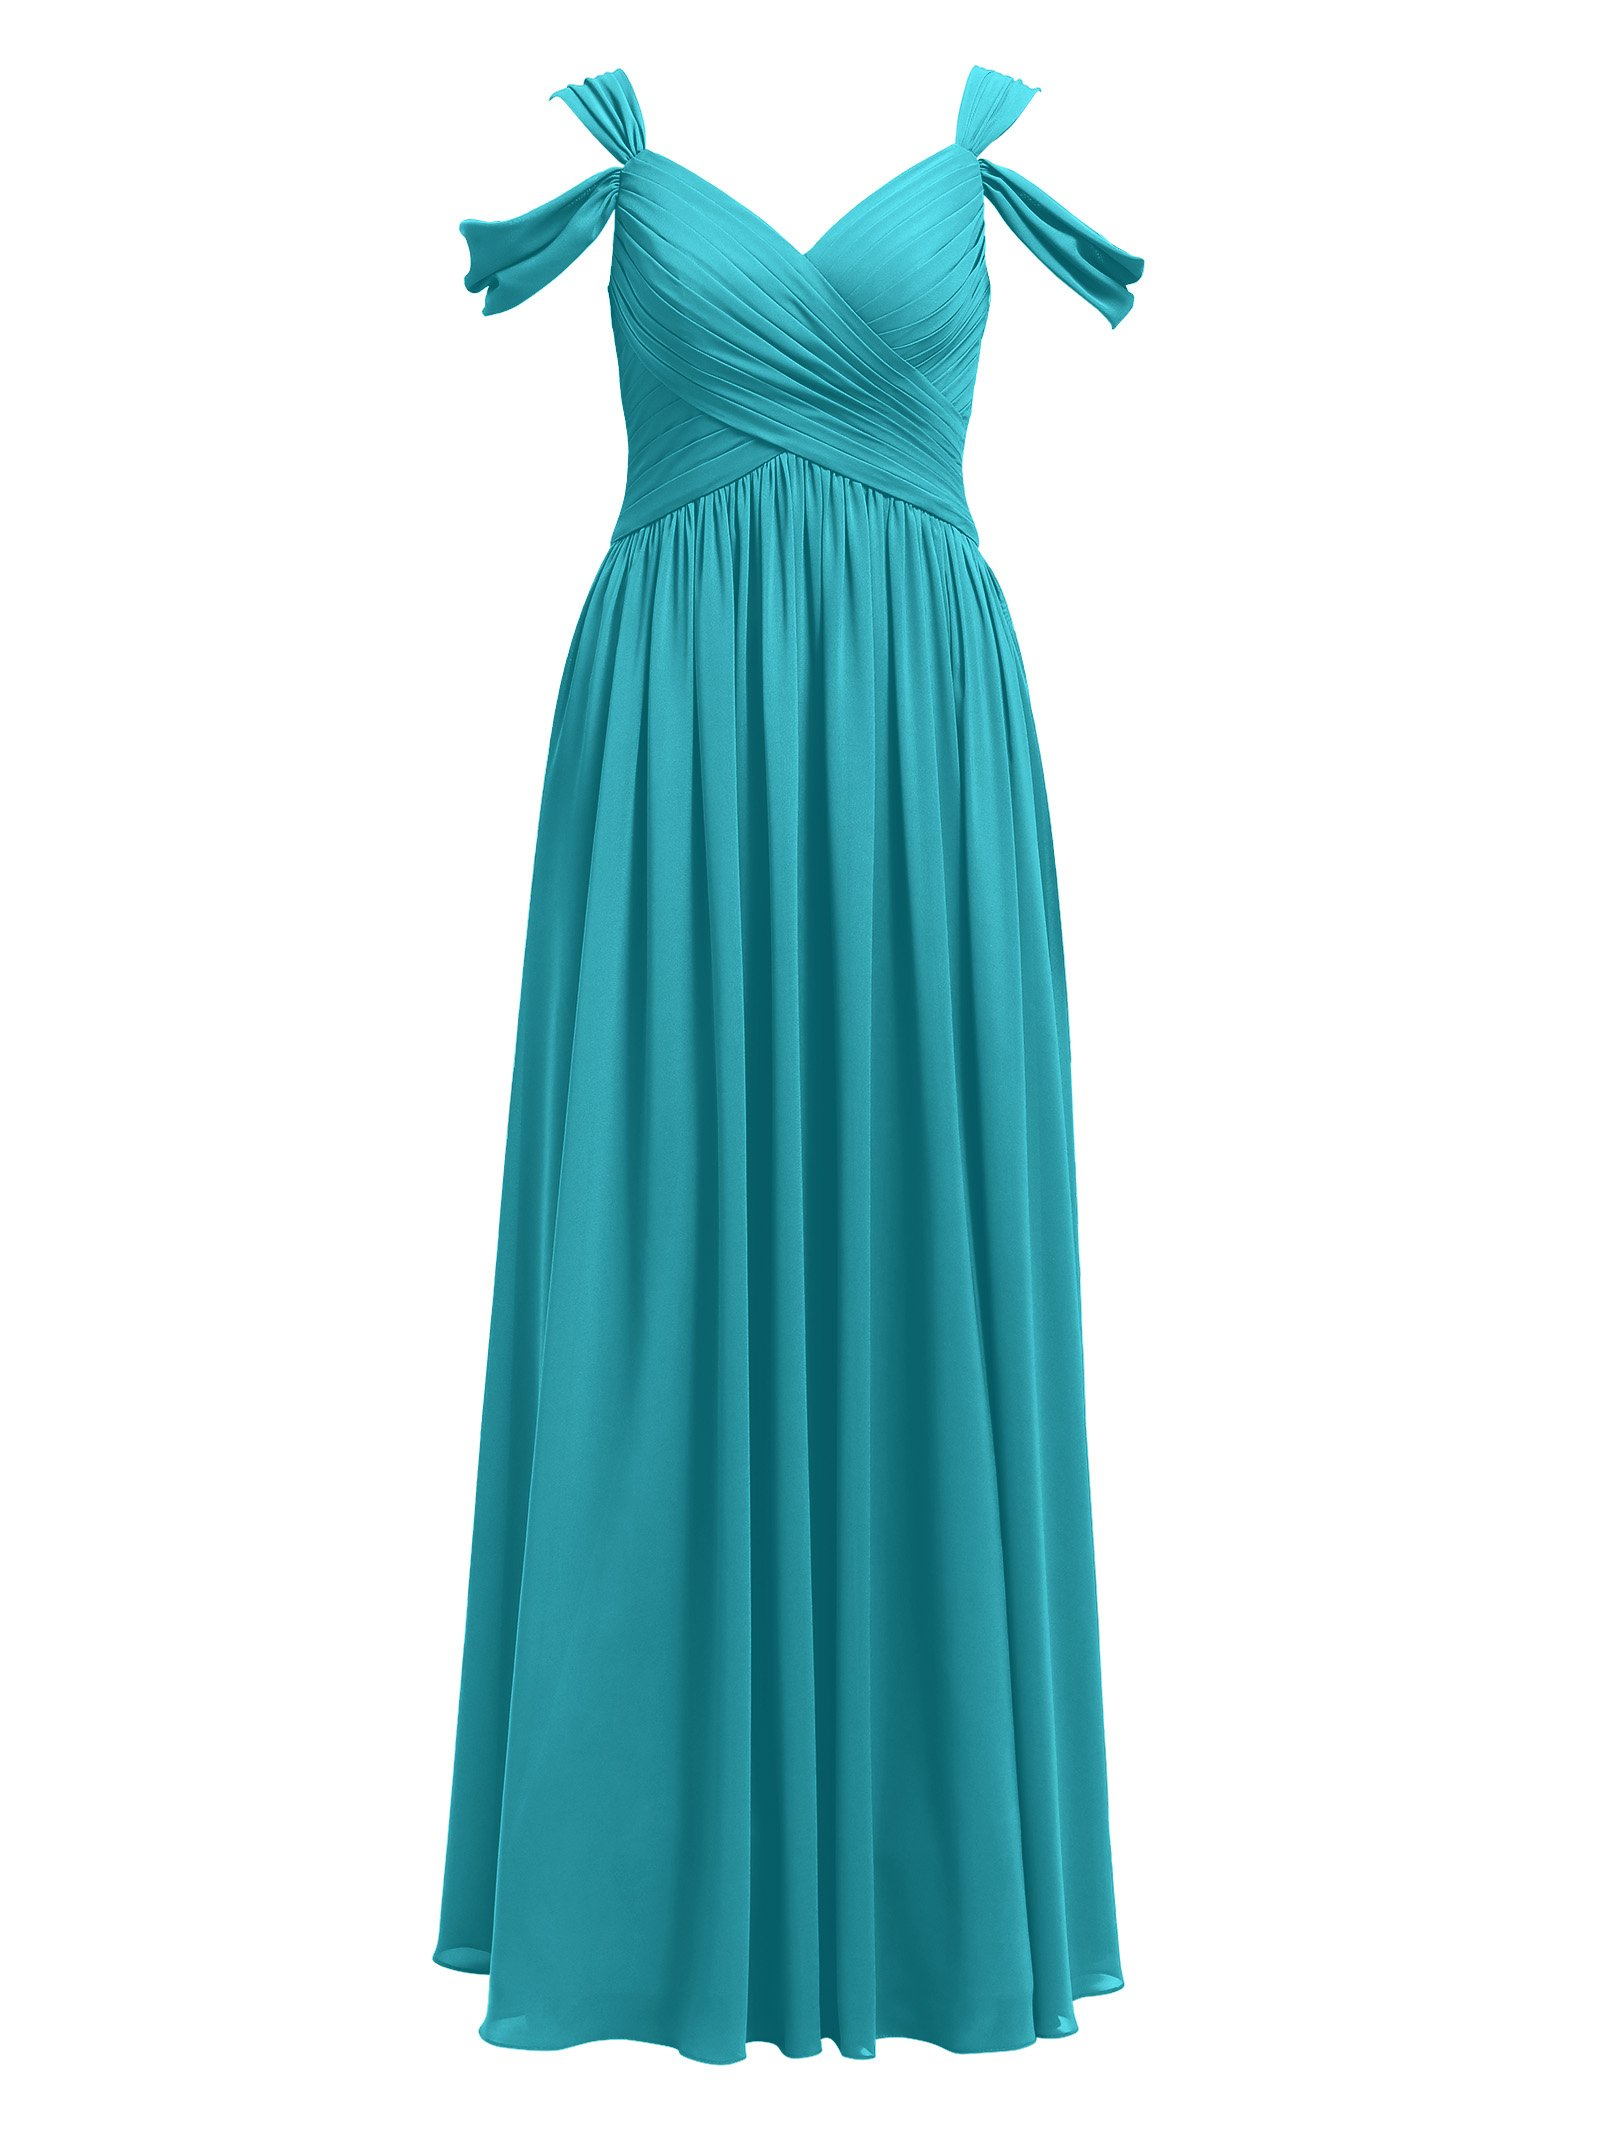 Alicepub Pleated Chiffon Maxi Plus Size Bridesmaid Dress Long Formal Event  Dress for Party, Turquoise, US18